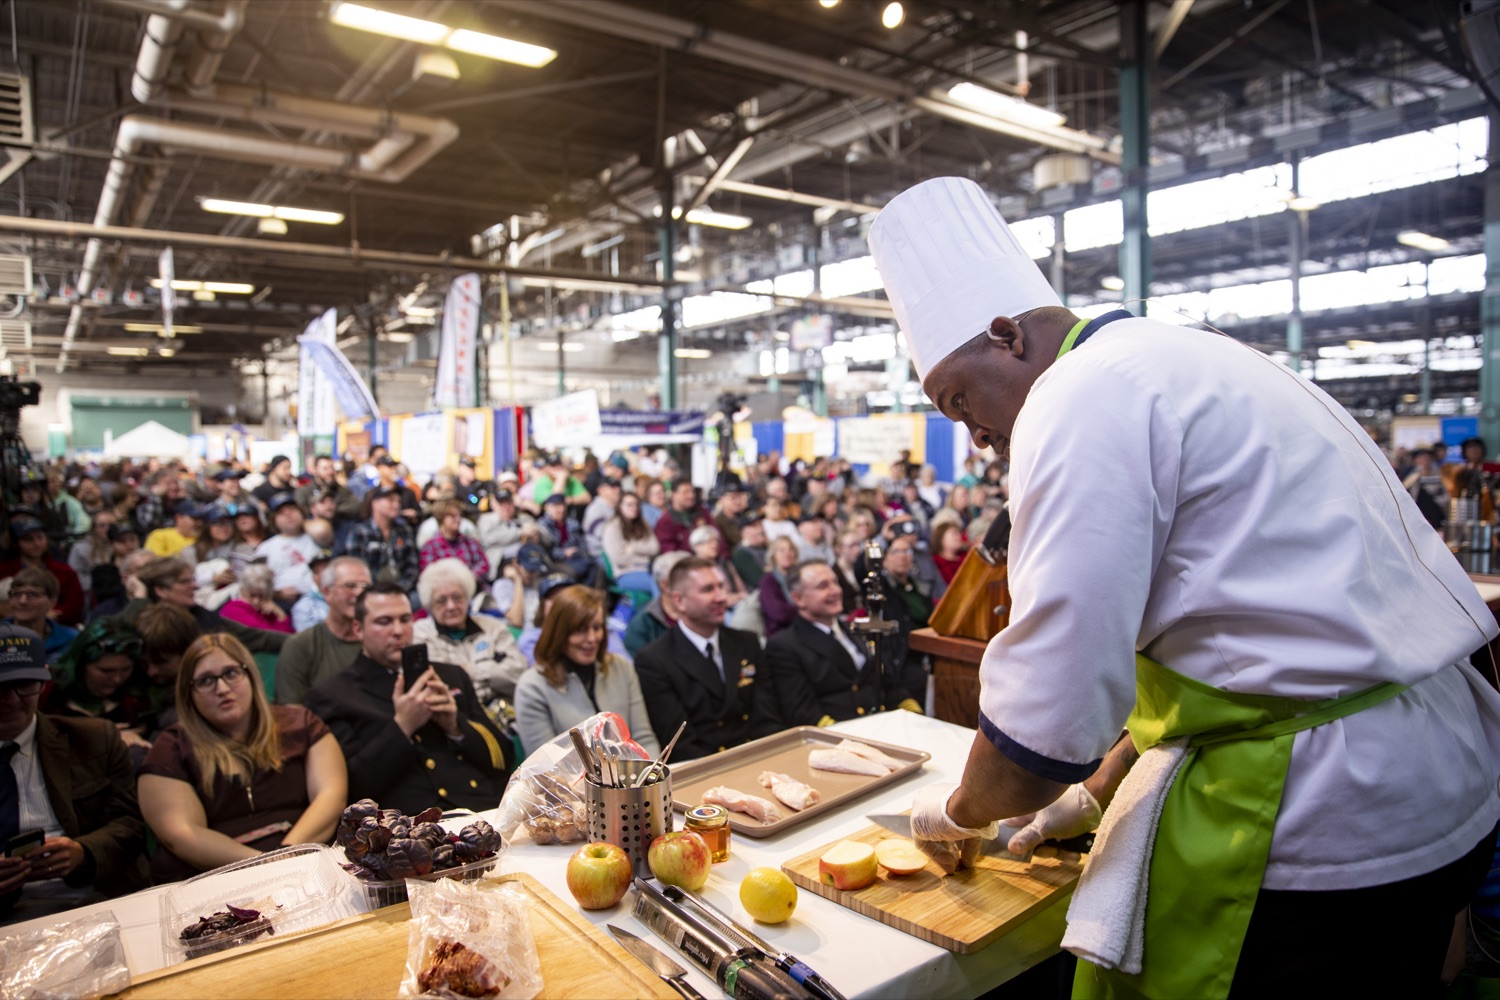 """<a href=""""http://filesource.abacast.com/commonwealthofpa/photo/17651_AGRIC_ARMY_NAVY_COOKOFF_CZ_06.jpg"""" target=""""_blank"""">⇣Download Photo<br></a>Culinary Specialist First Class Marlon ONeil Haughton prepares secret ingredients, including Pennsylvania apples, at the 2020 Army vs. Navy Cook-Off in Harrisburg on January 9, 2020."""